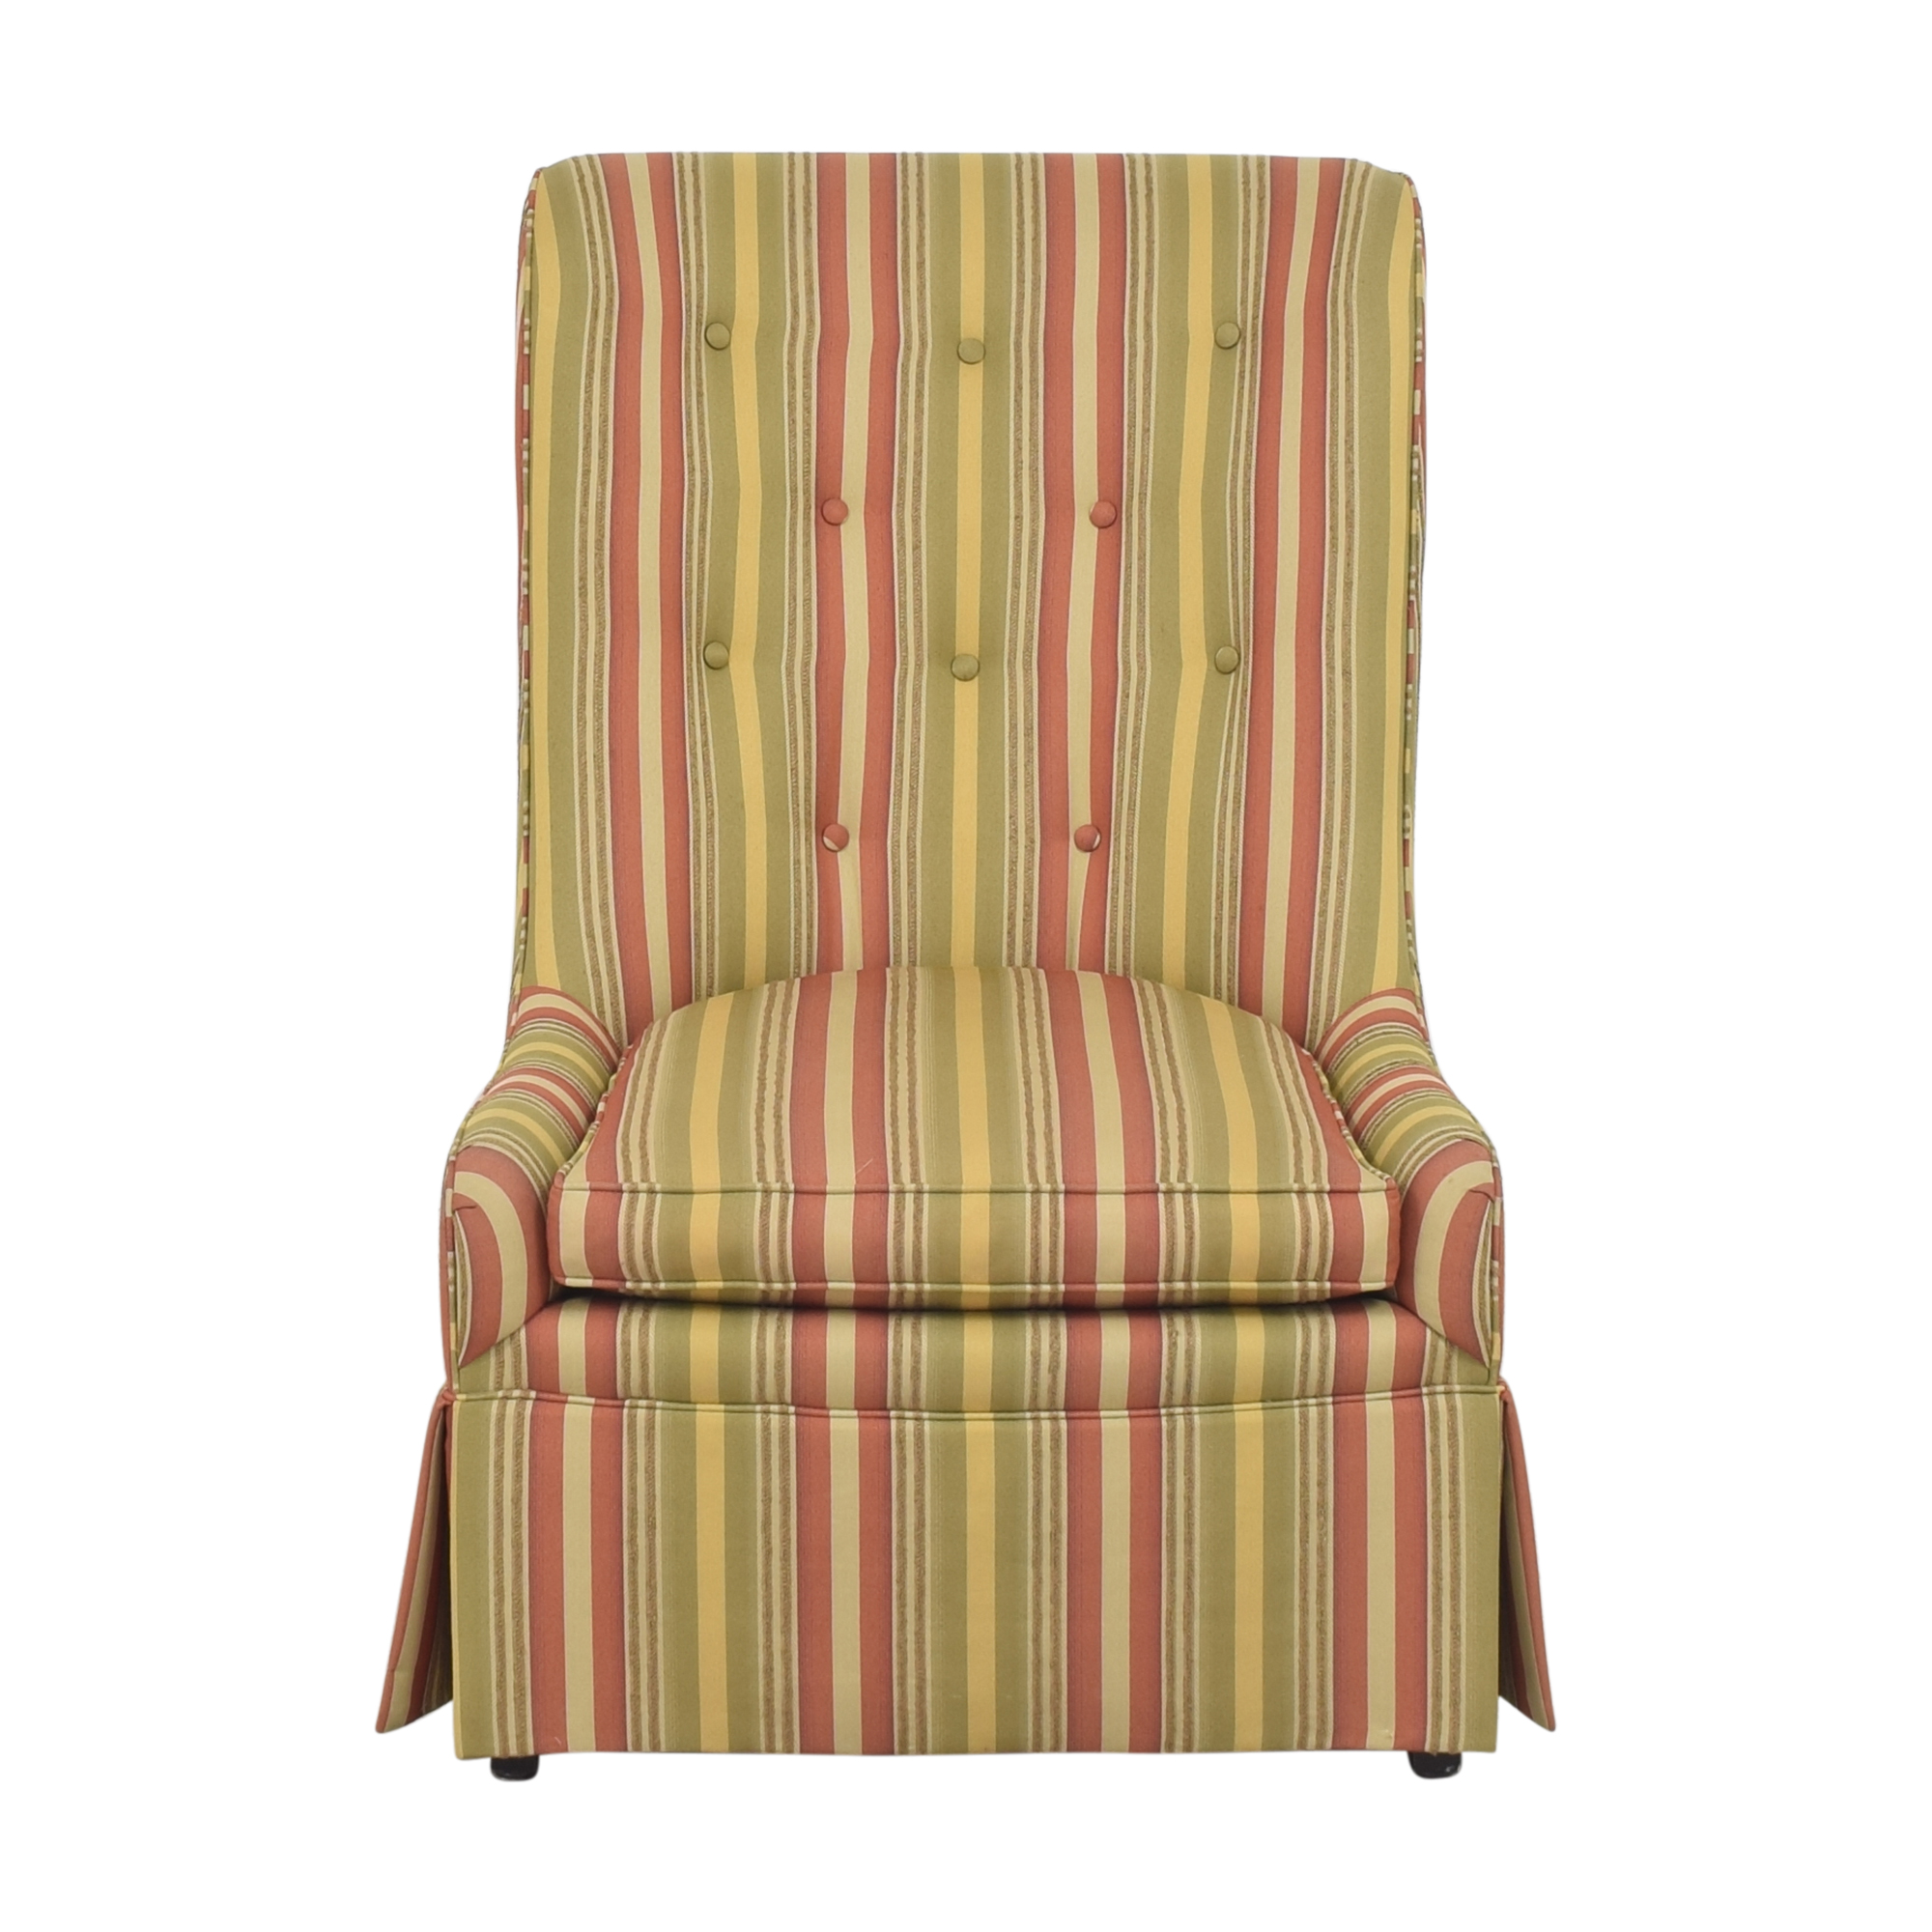 Theodore Alexander Theodore Alexander Althorp Living History Accent Chair dimensions